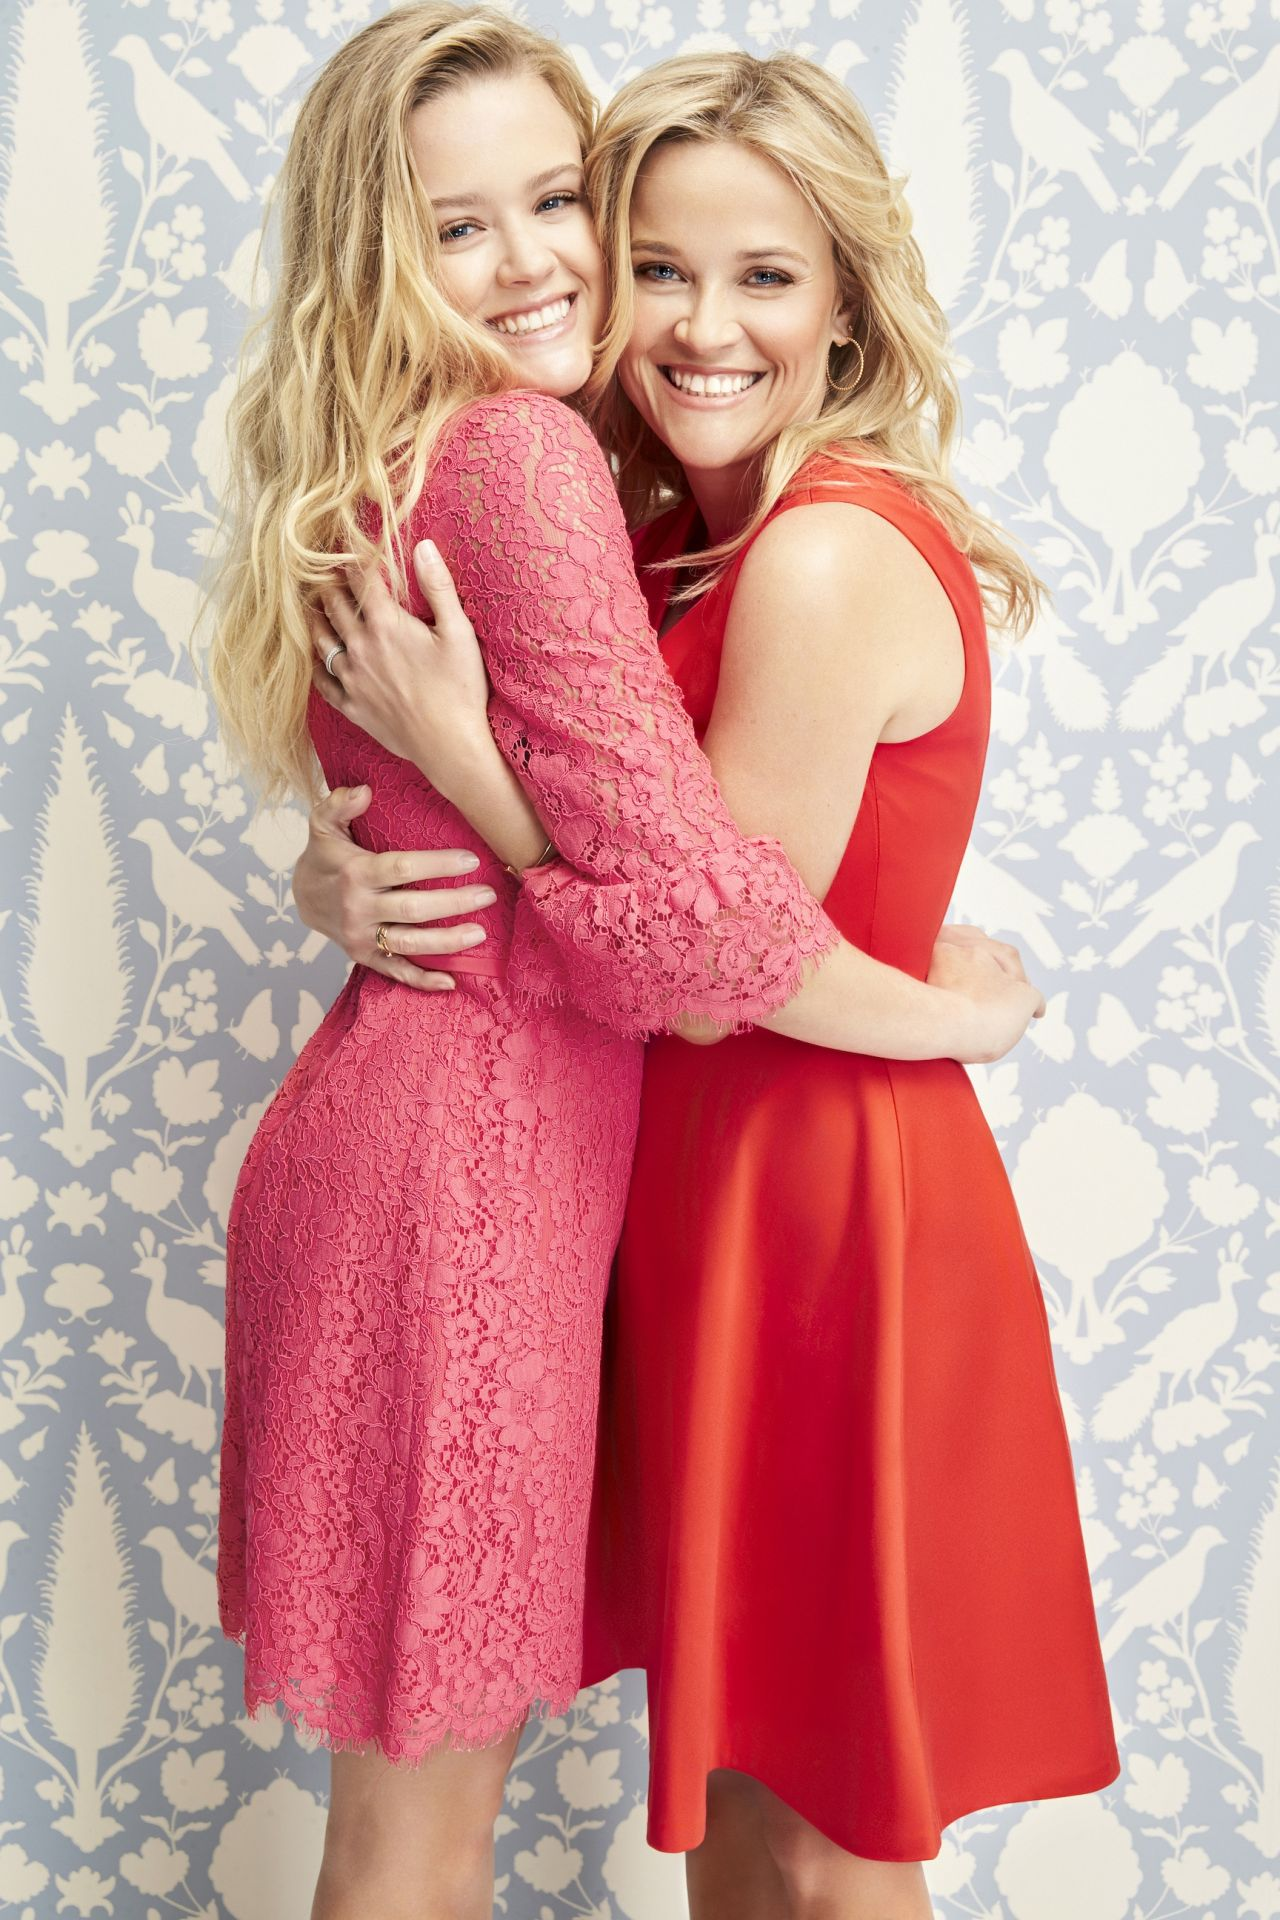 http://celebmafia.com/wp-content/uploads/2018/02/reese-witherspoon-and-ava-phillippe-valentine-s-day-campaign-02-01-2018-4.jpg